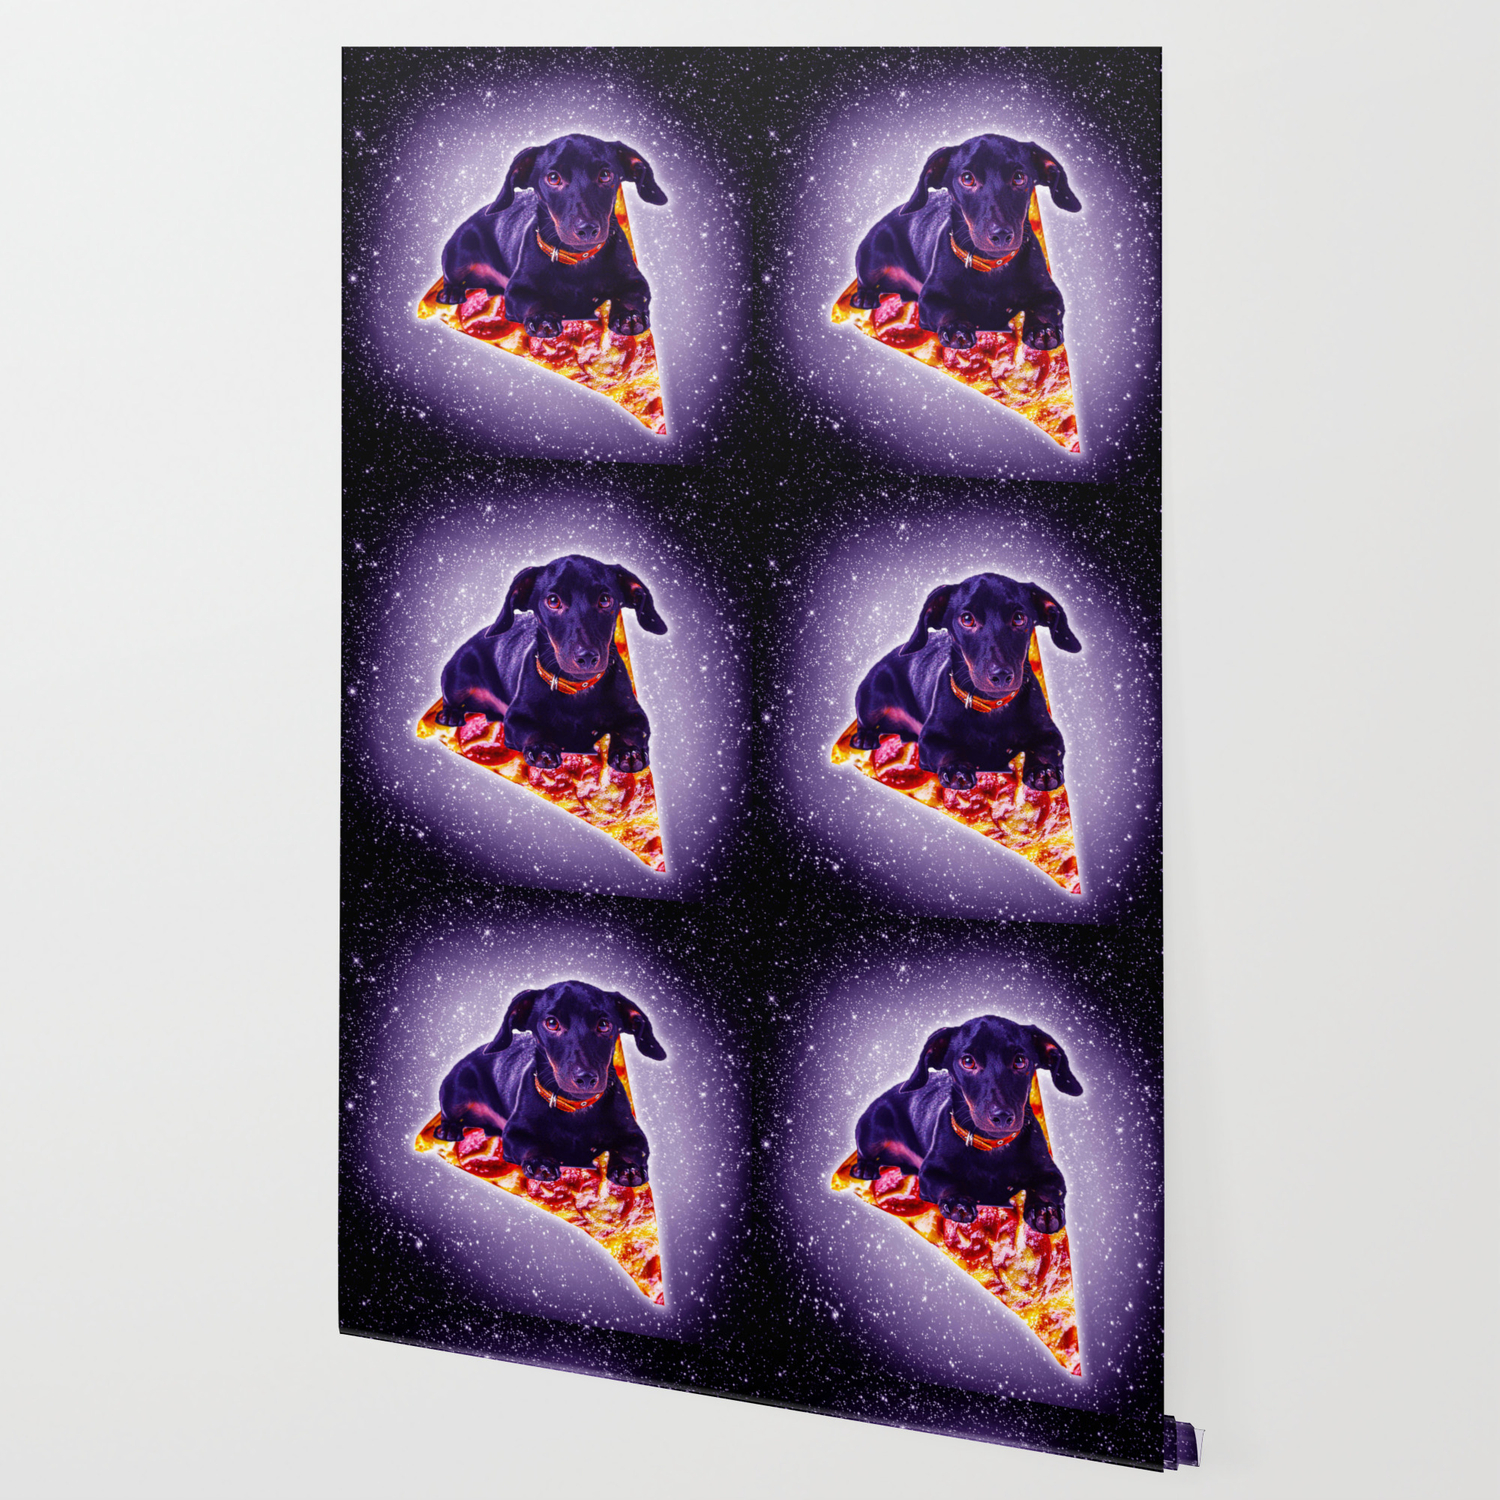 outer space galaxy dog riding pizza wallpaper